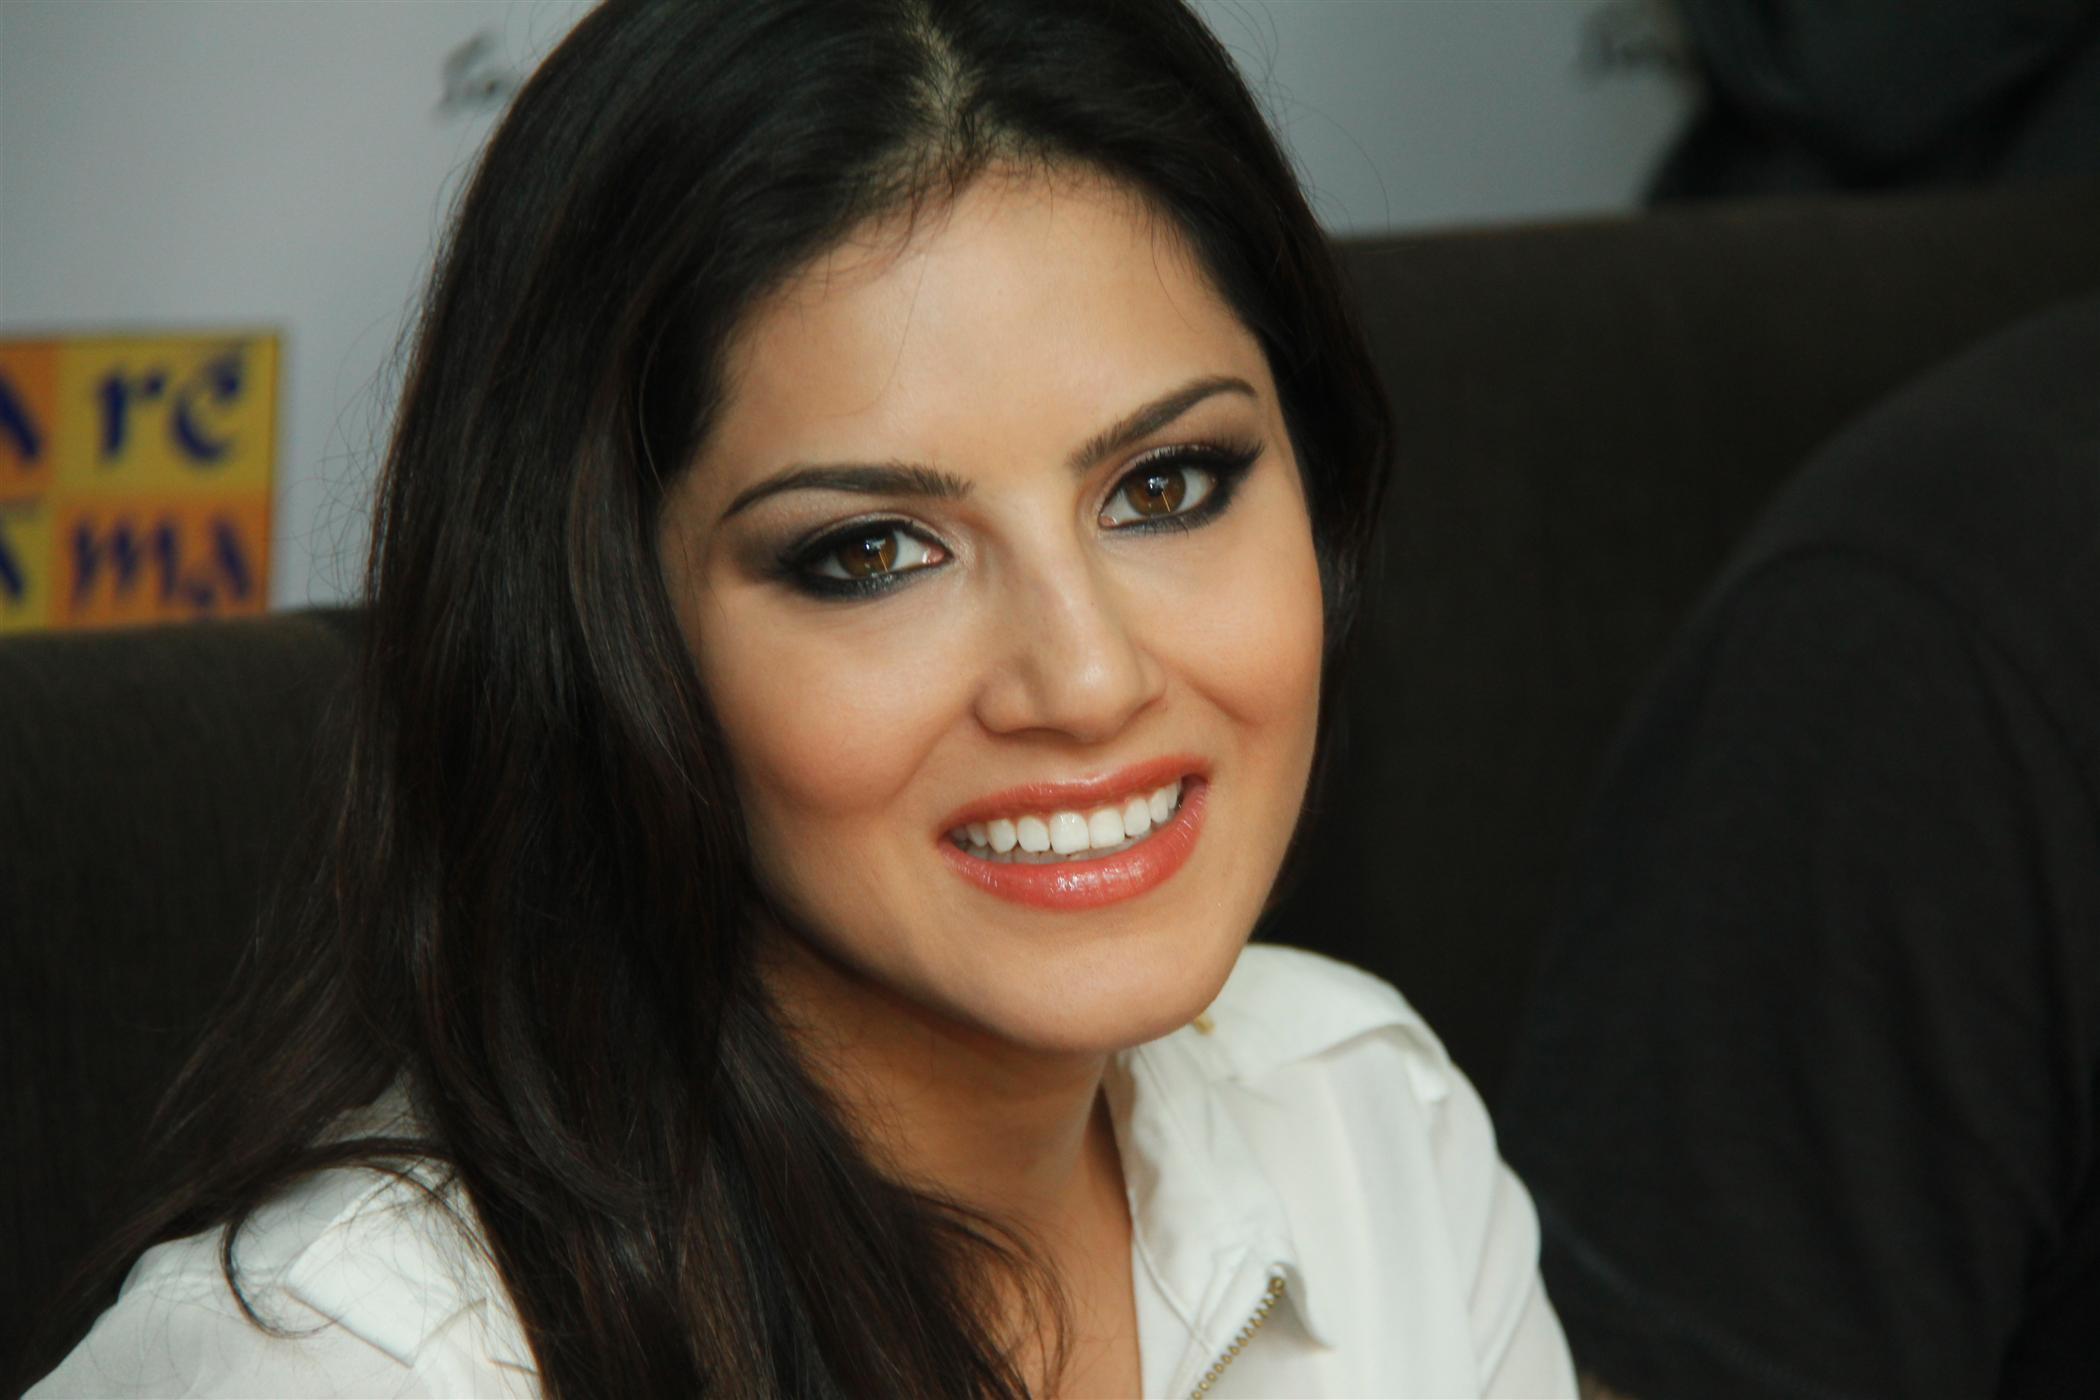 Sunny Leone Img Hd Wallpapers Hd Images Hd Pictures